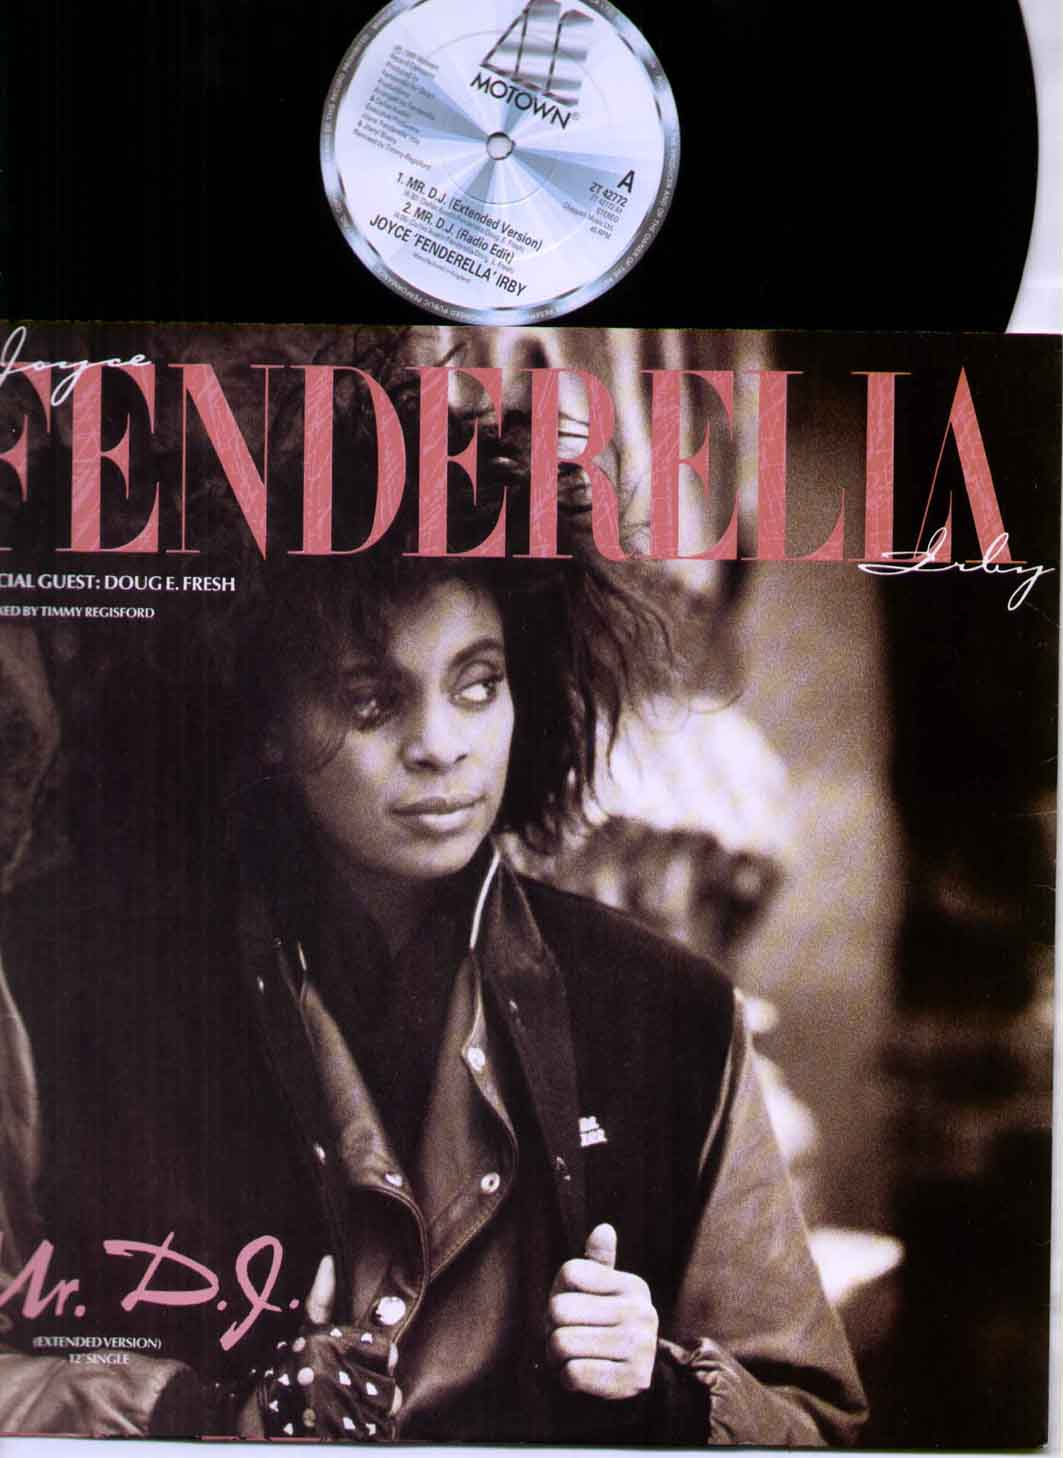 Joyce Fenderella'Irby Mr+Dj 12''